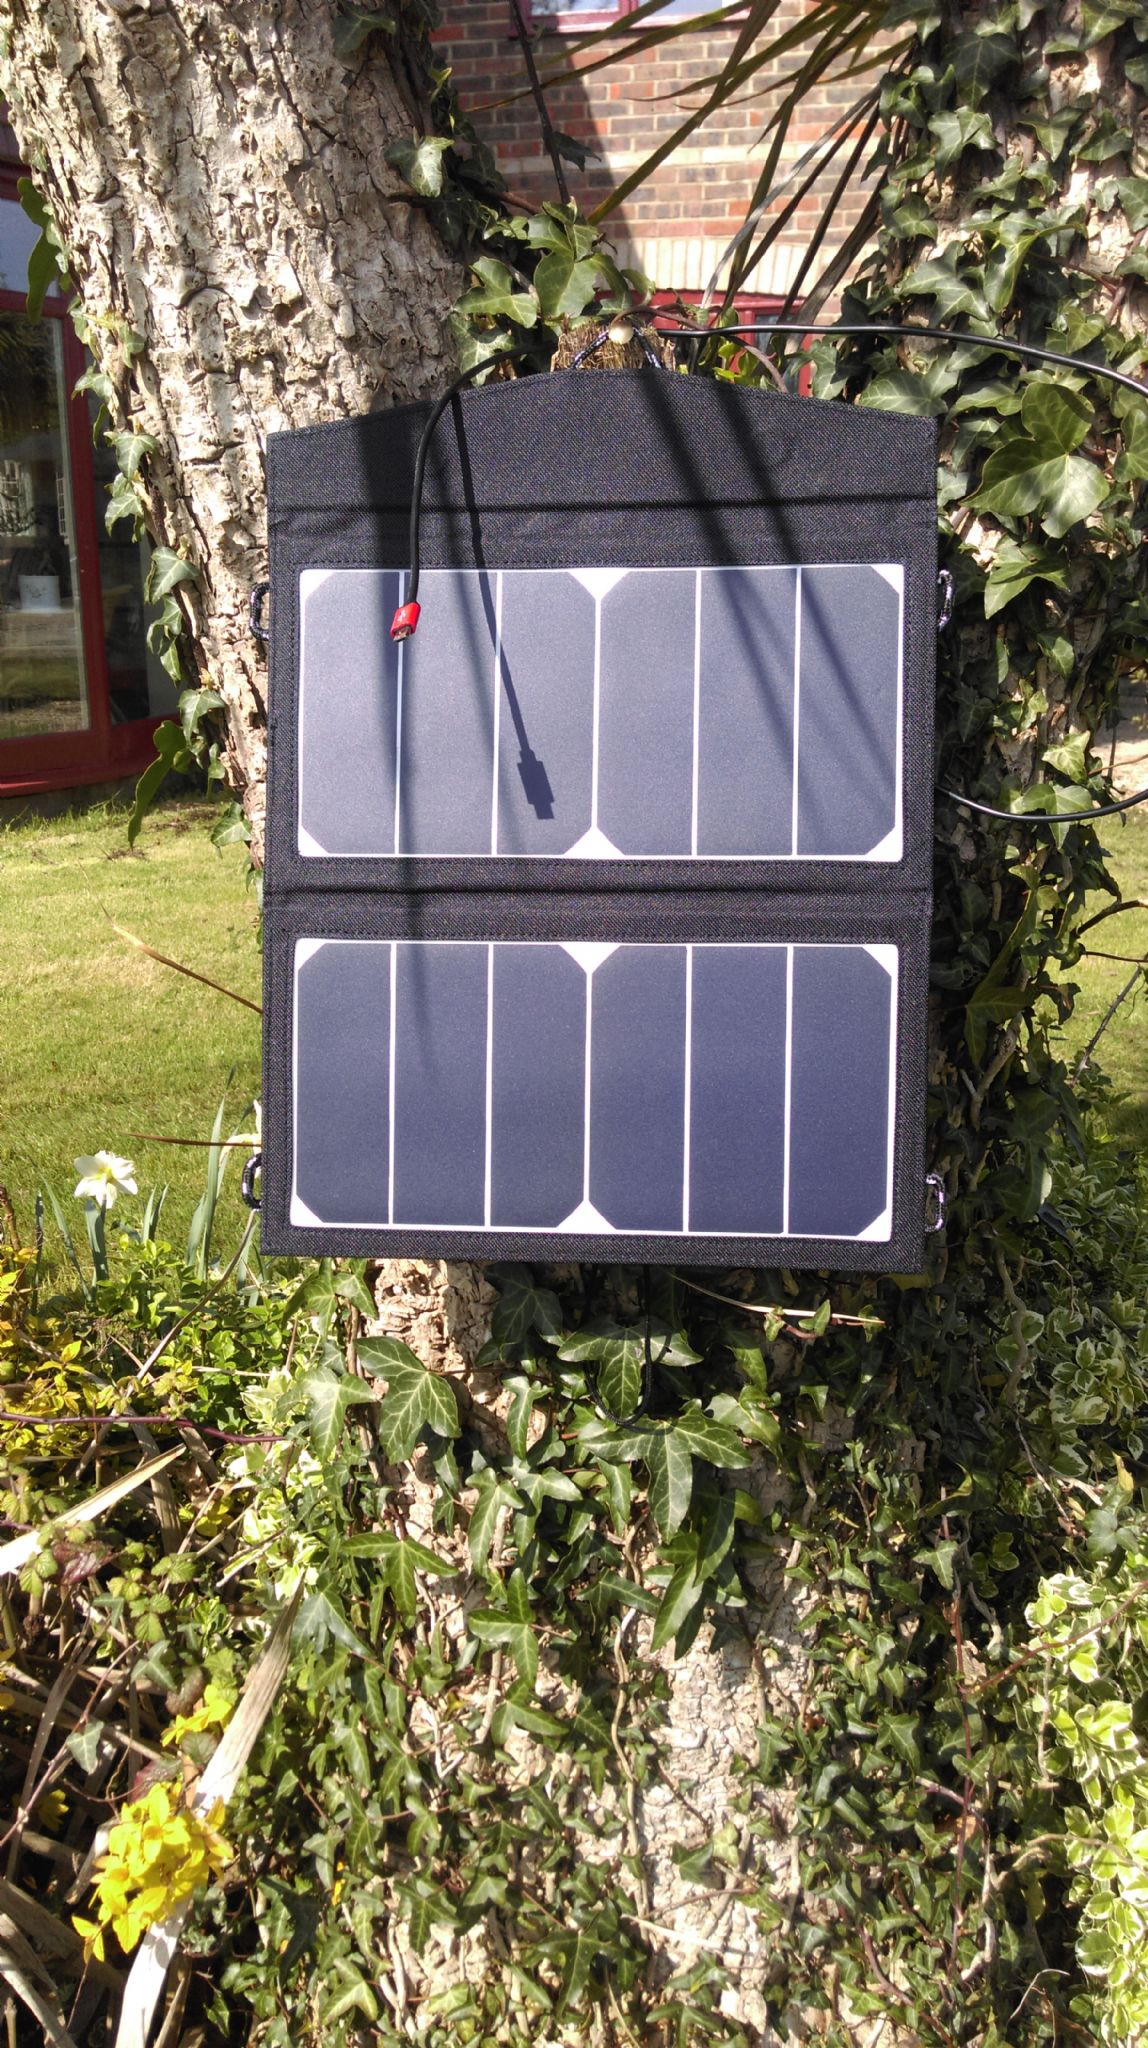 Folding Flexible Solar Panel Charger Bag For Mobile Phones